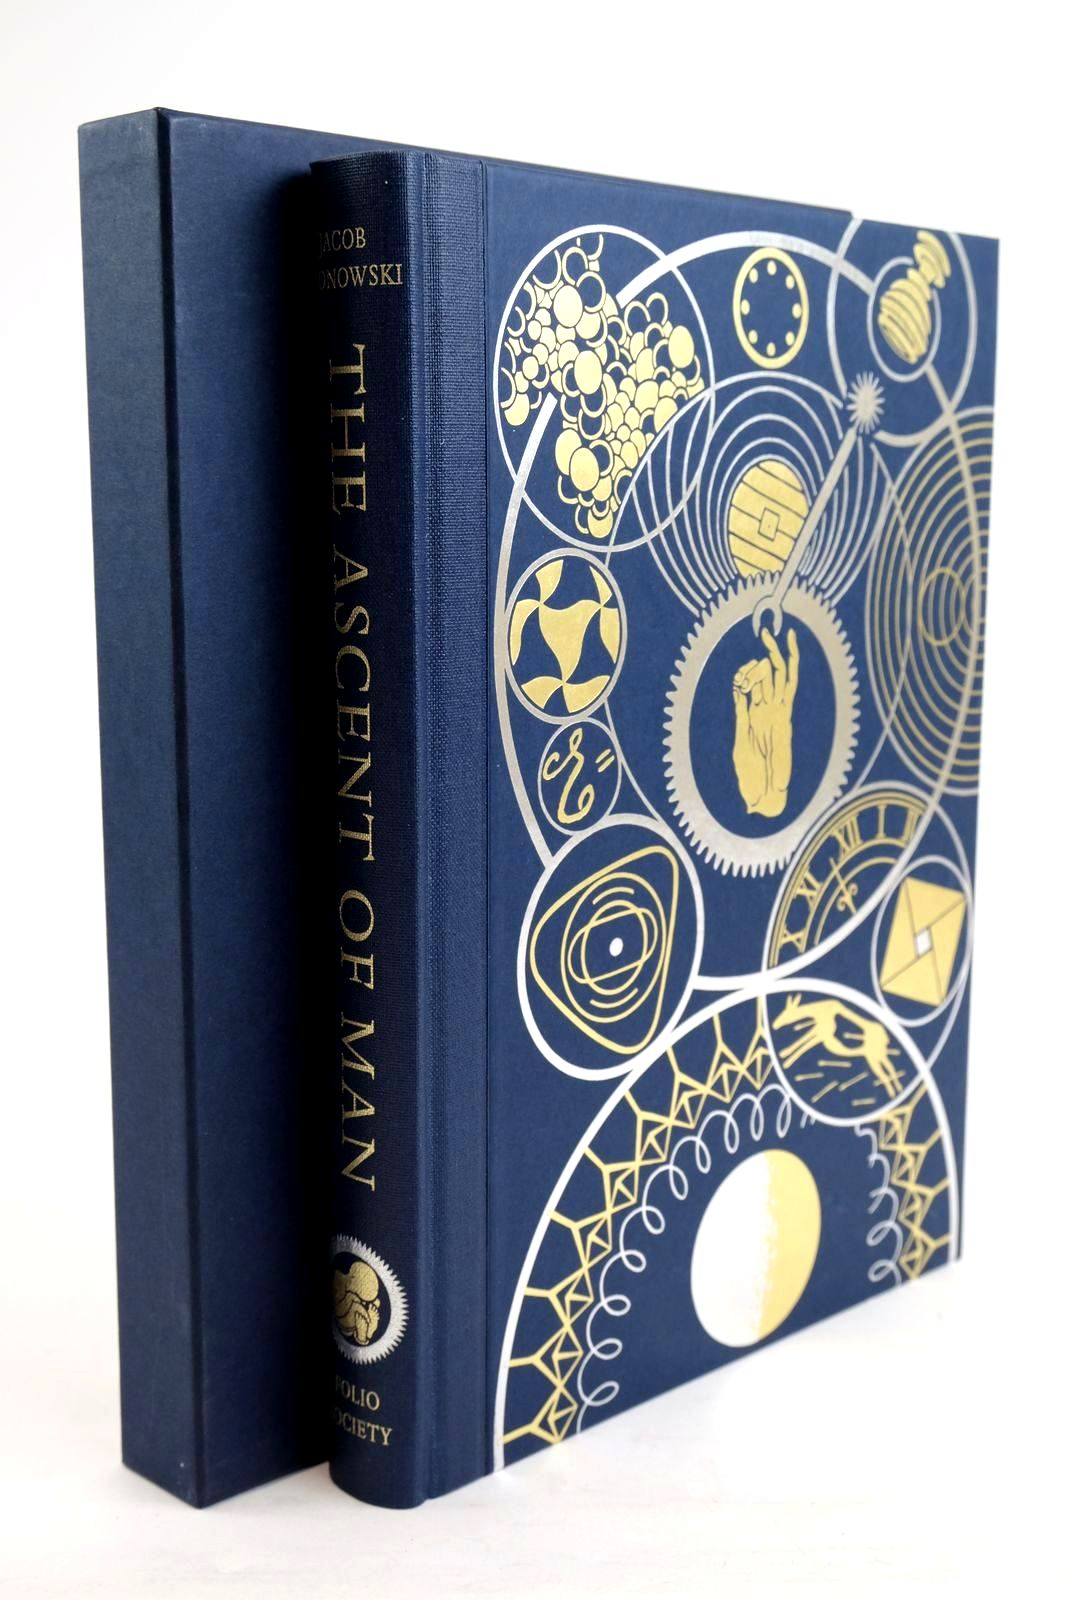 Photo of THE ASCENT OF MAN written by Bronowski, J. Bragg, Melvyn published by Folio Society (STOCK CODE: 1320244)  for sale by Stella & Rose's Books